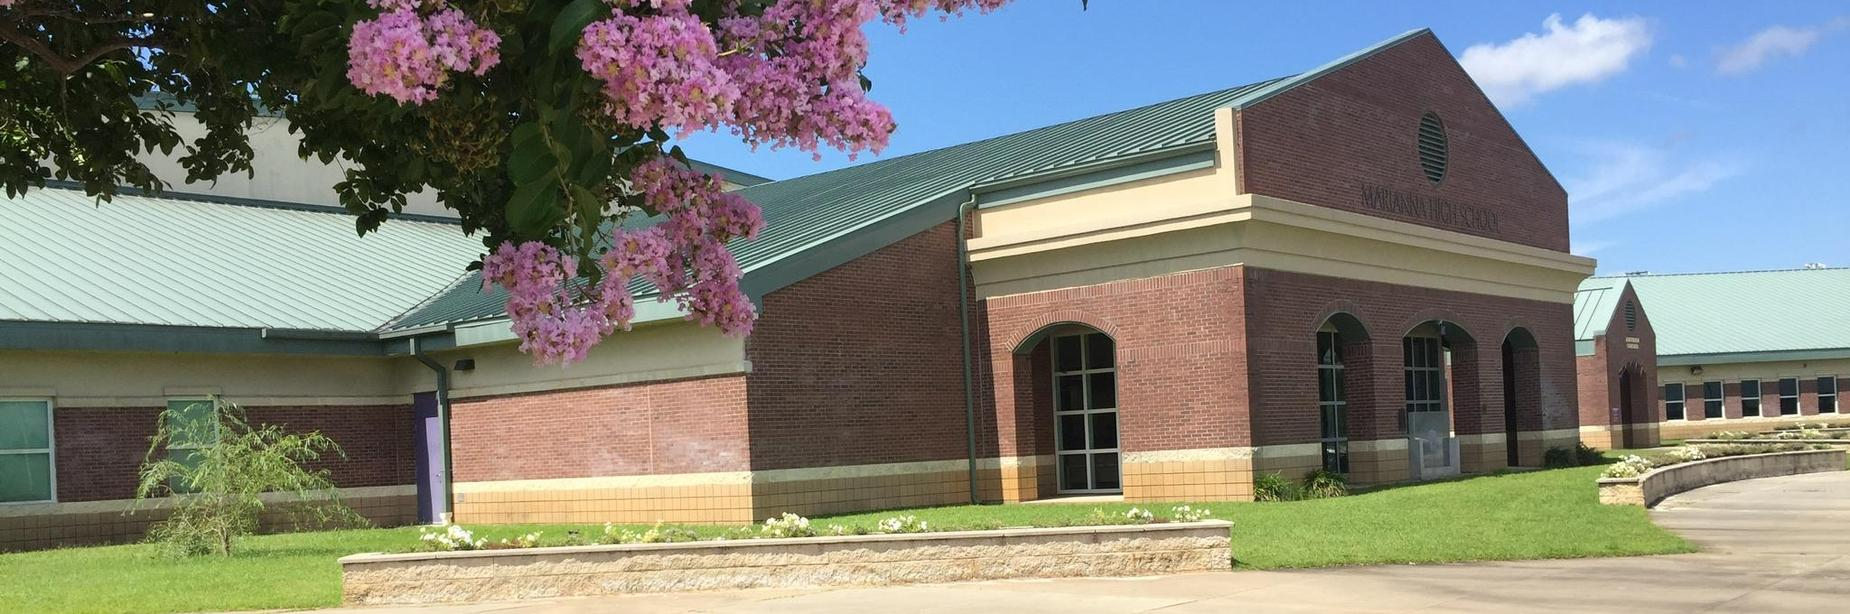 front of mhs building